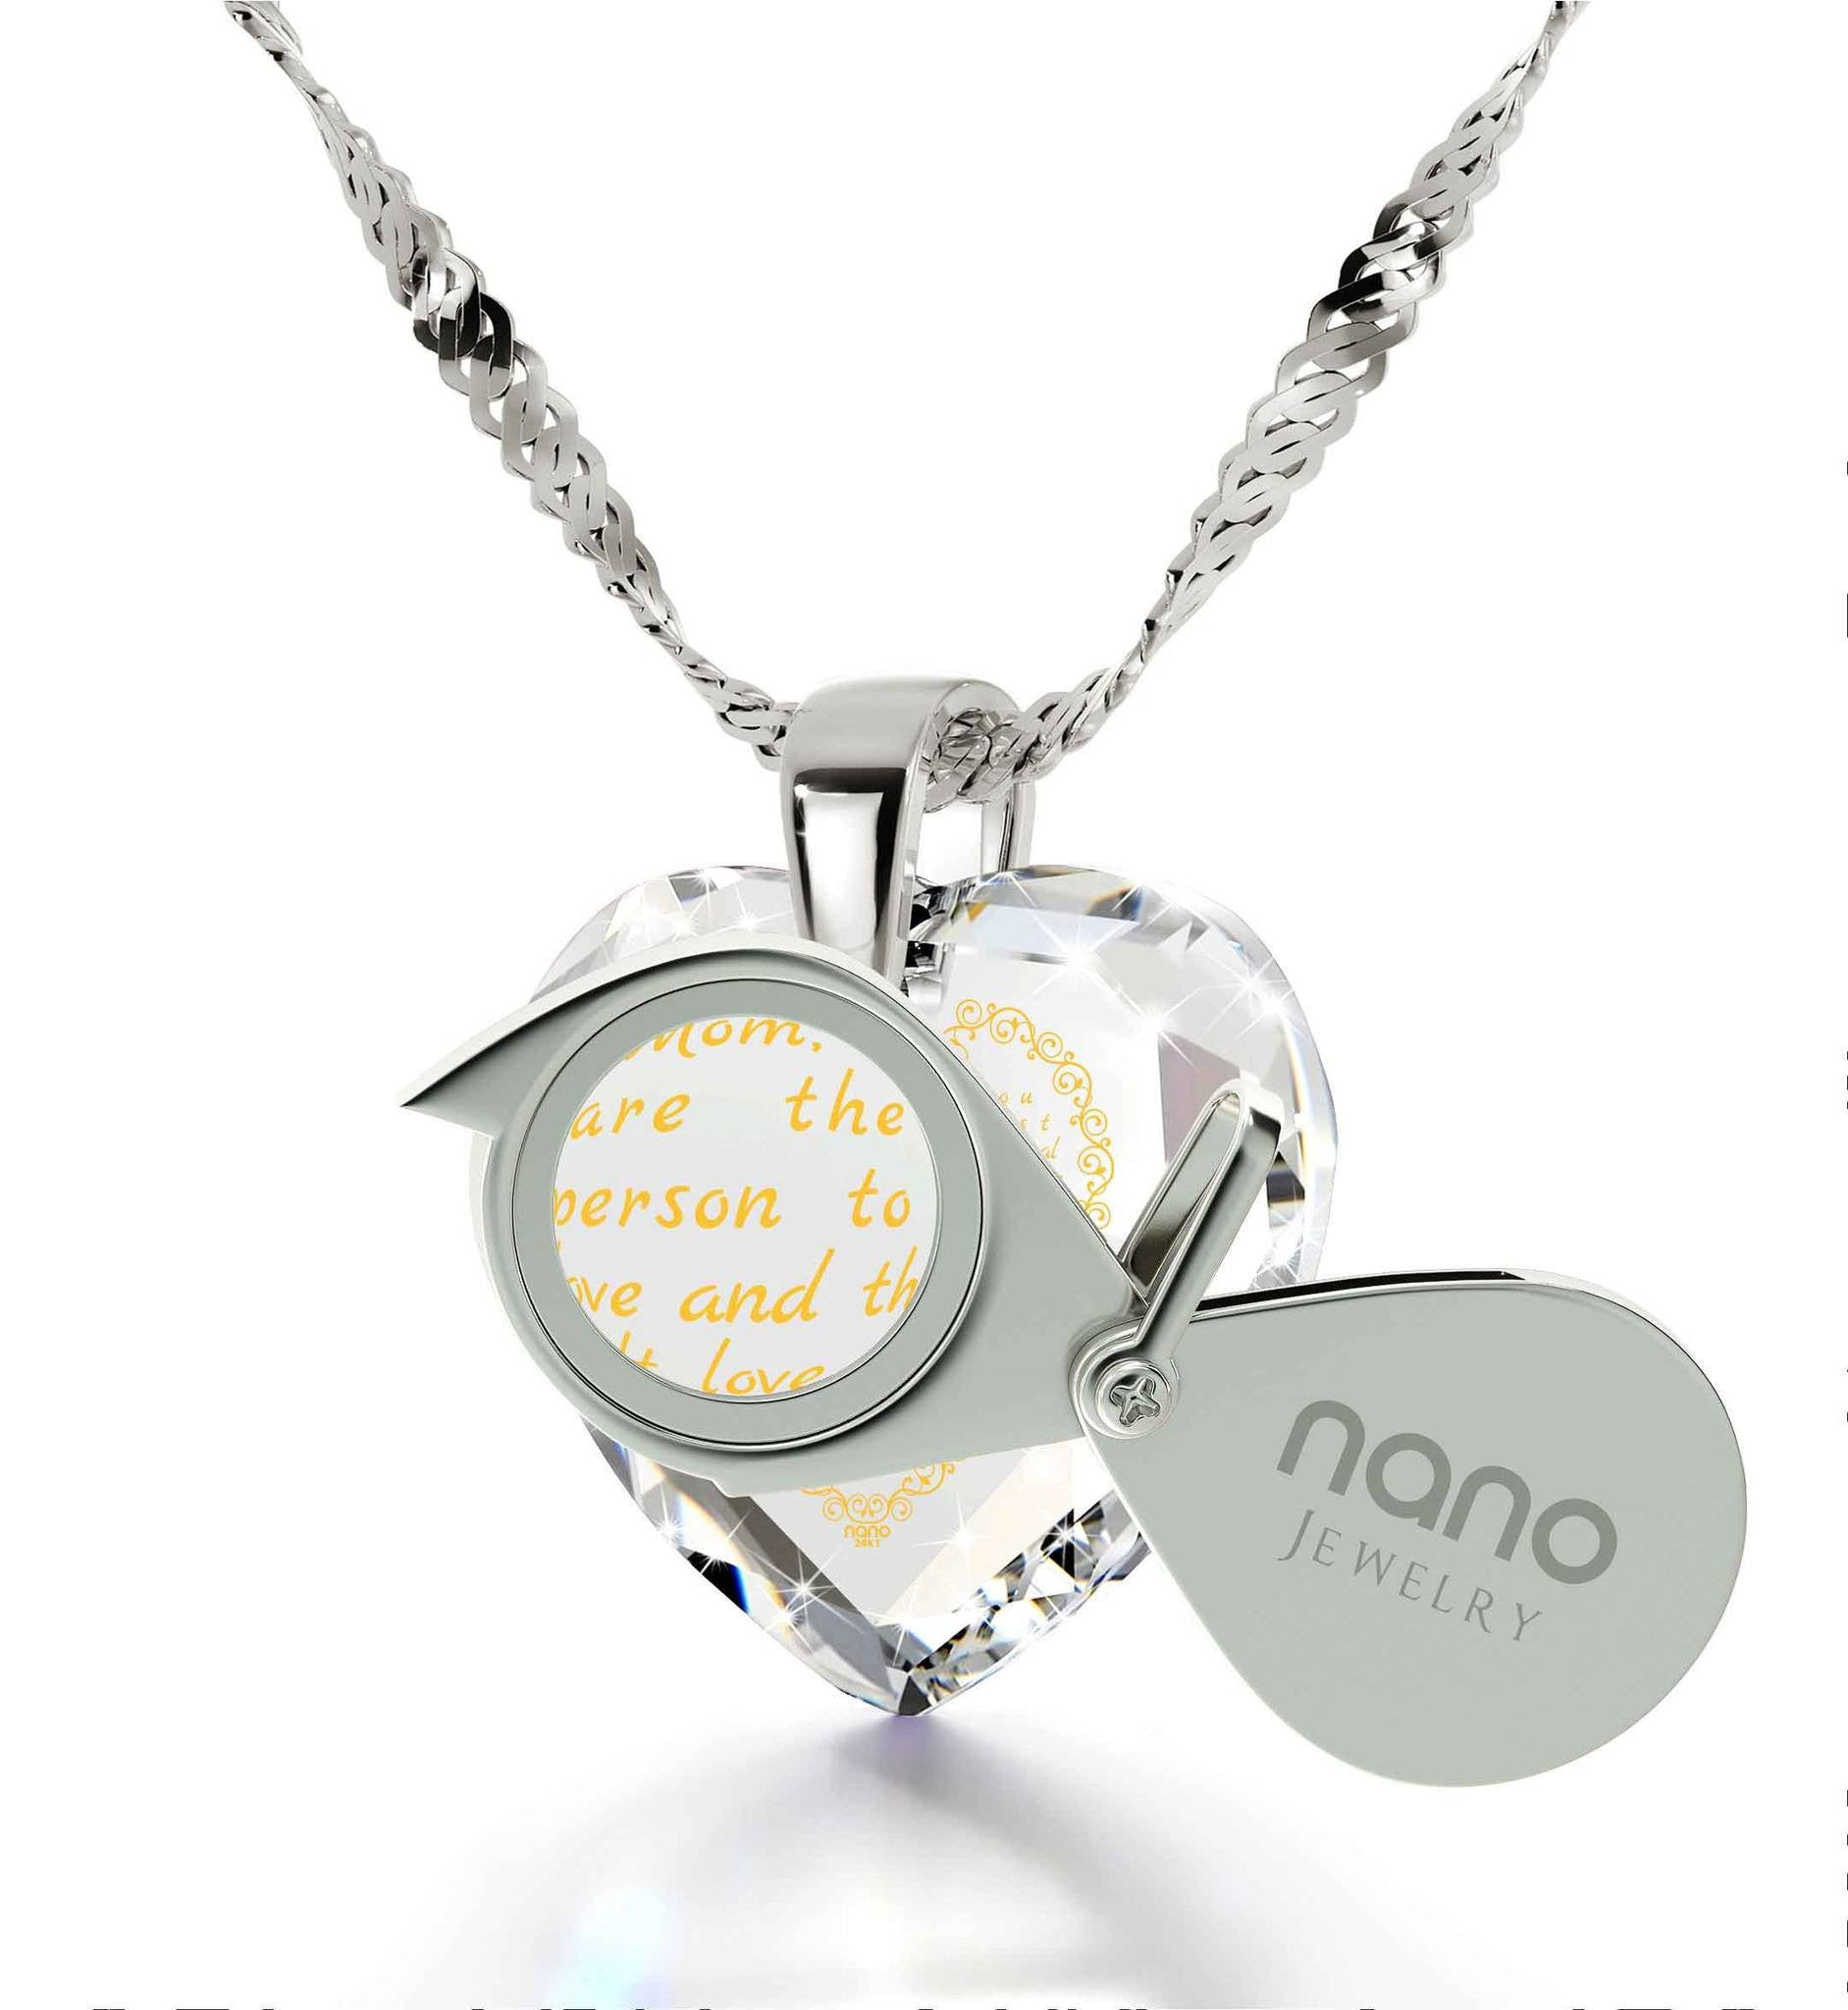 c3c37a9e9 ... Special Mother's Day Gift, Birthday Presents for Mom, Cubic Zirconia  Necklace, Engraved in ...